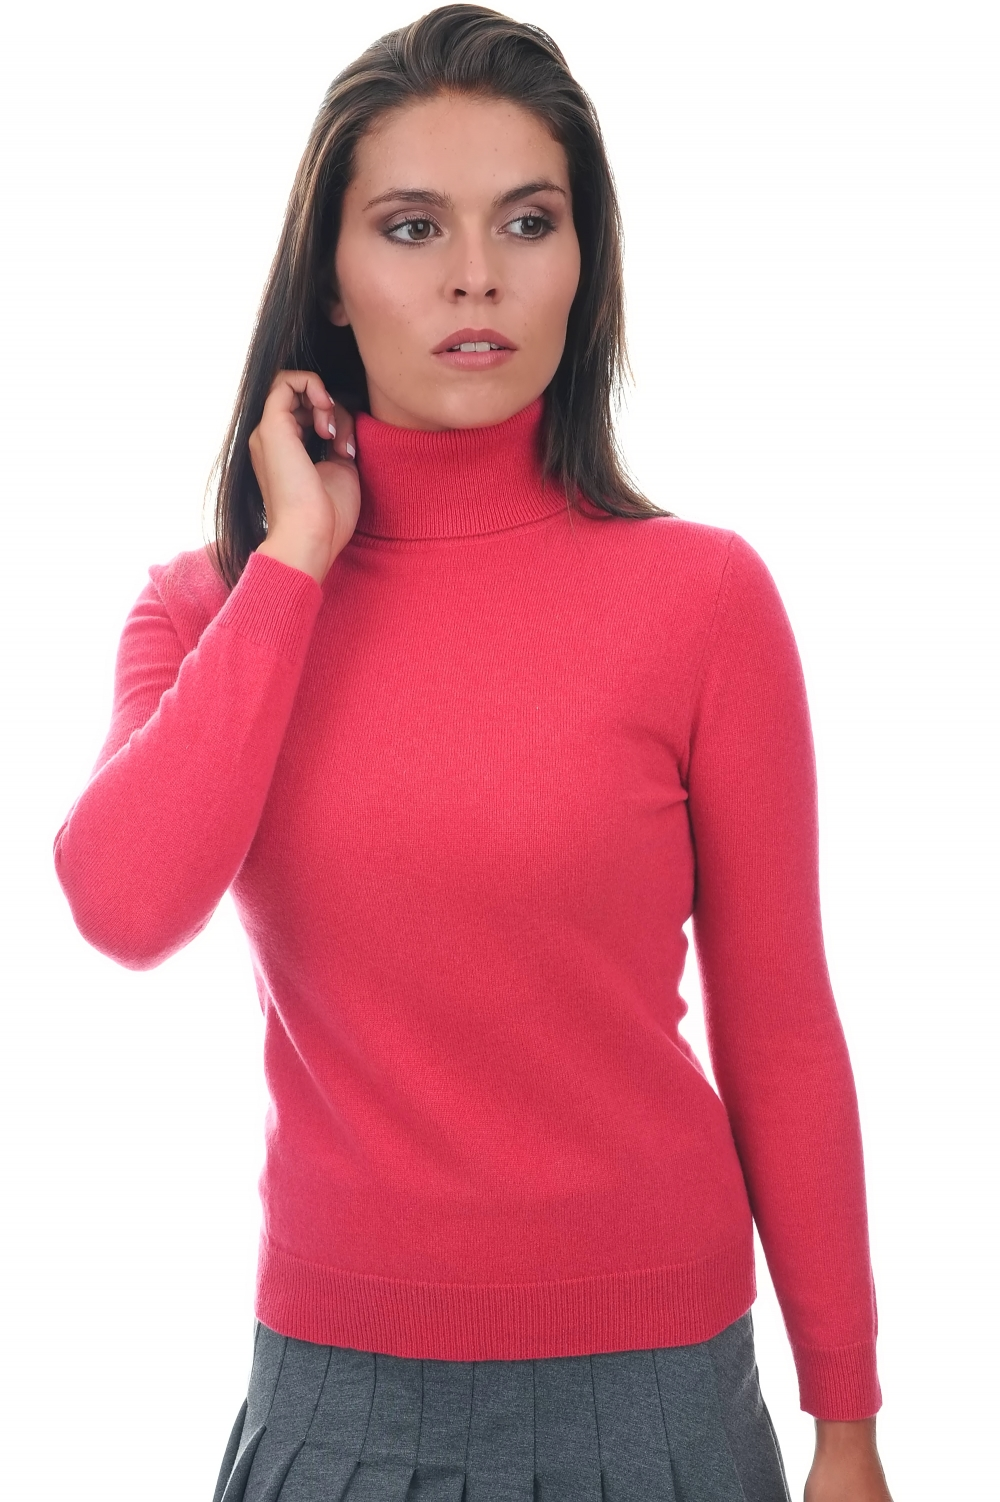 Shop Floryday for affordable Sweaters & Sweatshirts. Floryday offers latest ladies' Live Chat 24/7· 5% Off Sign Up· Fress Shipping· % Secure.